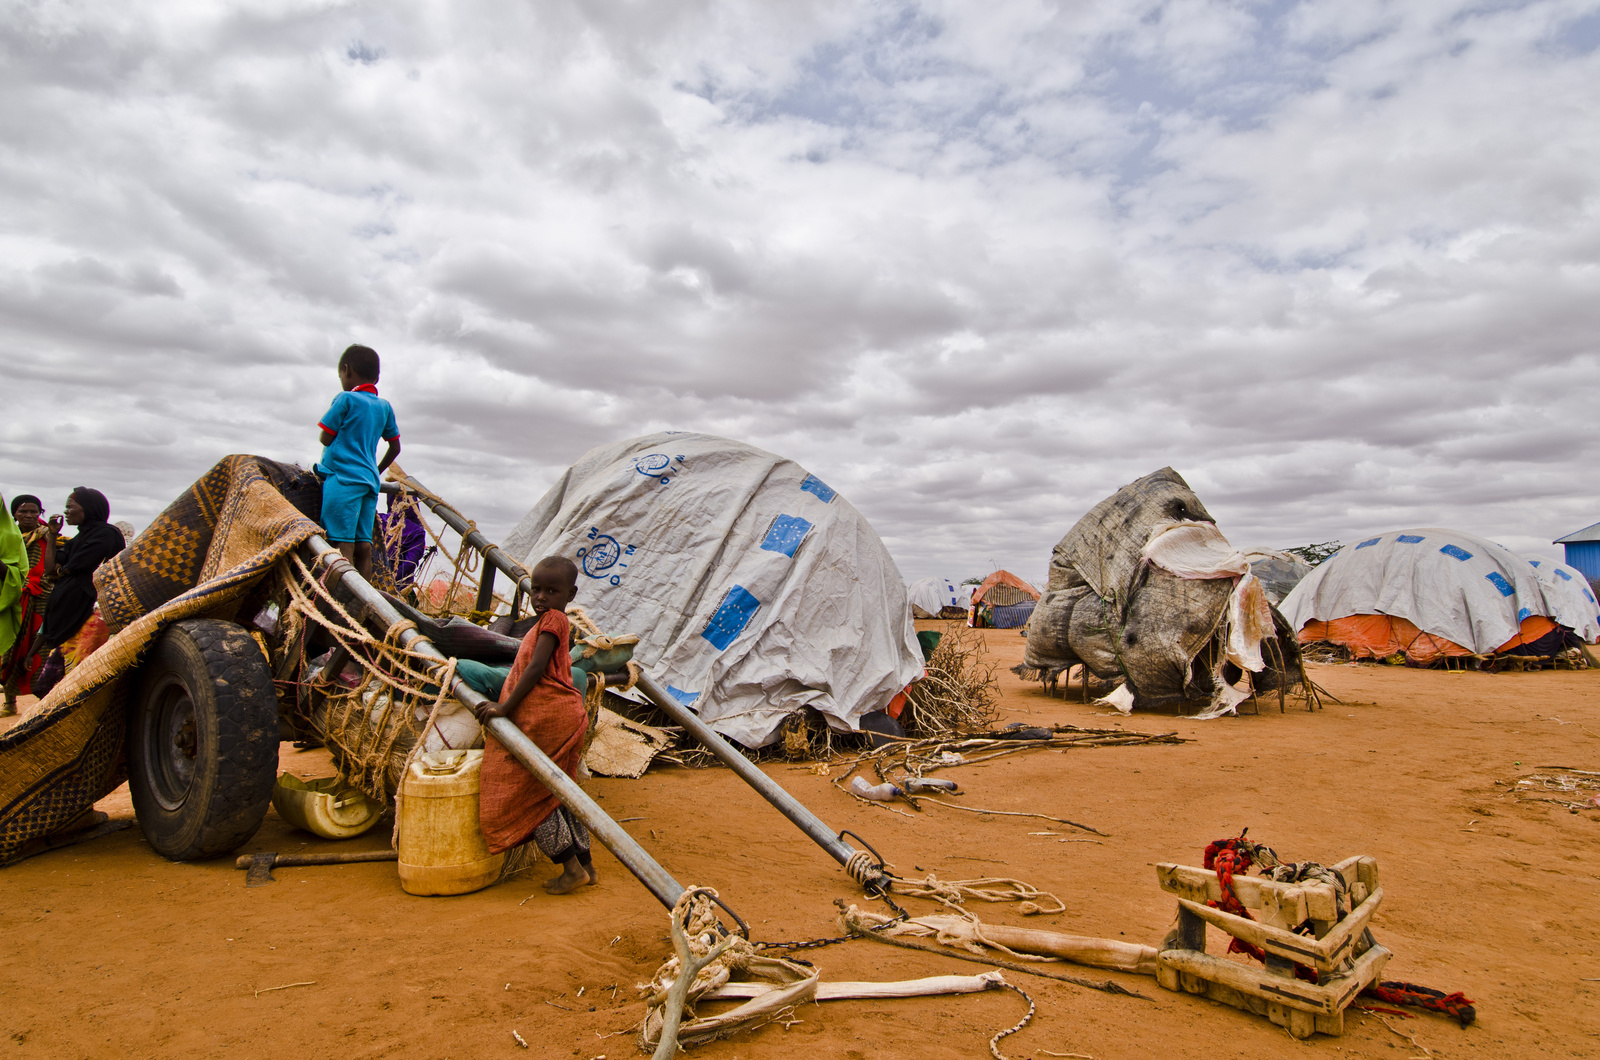 Displaced children play with a cart, one looks into the horizon with an overview of the displacement site while the other looks at the camera.